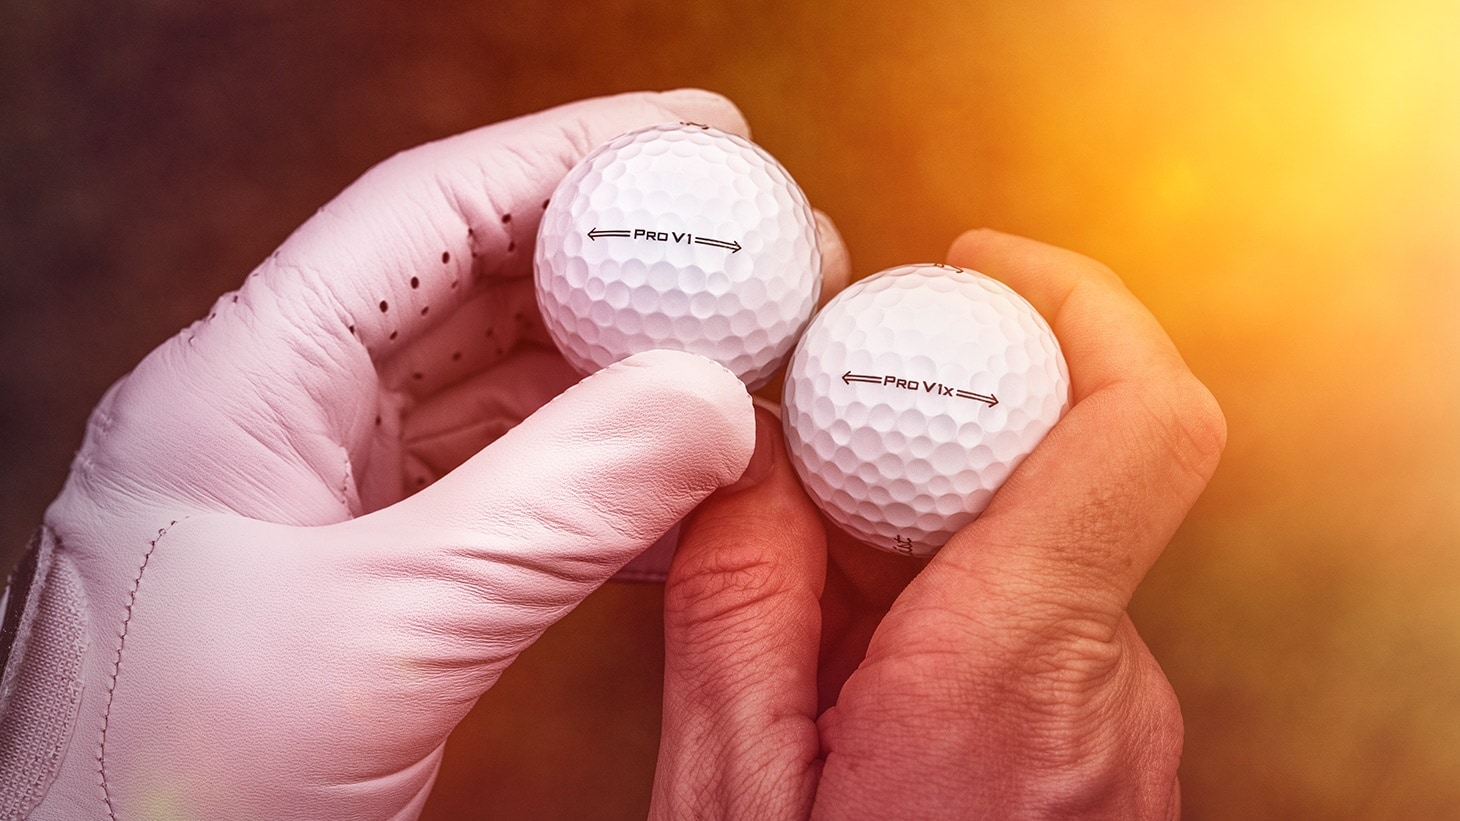 A golfer compares new Titleist Pro V1 and Pro V1x golf balls